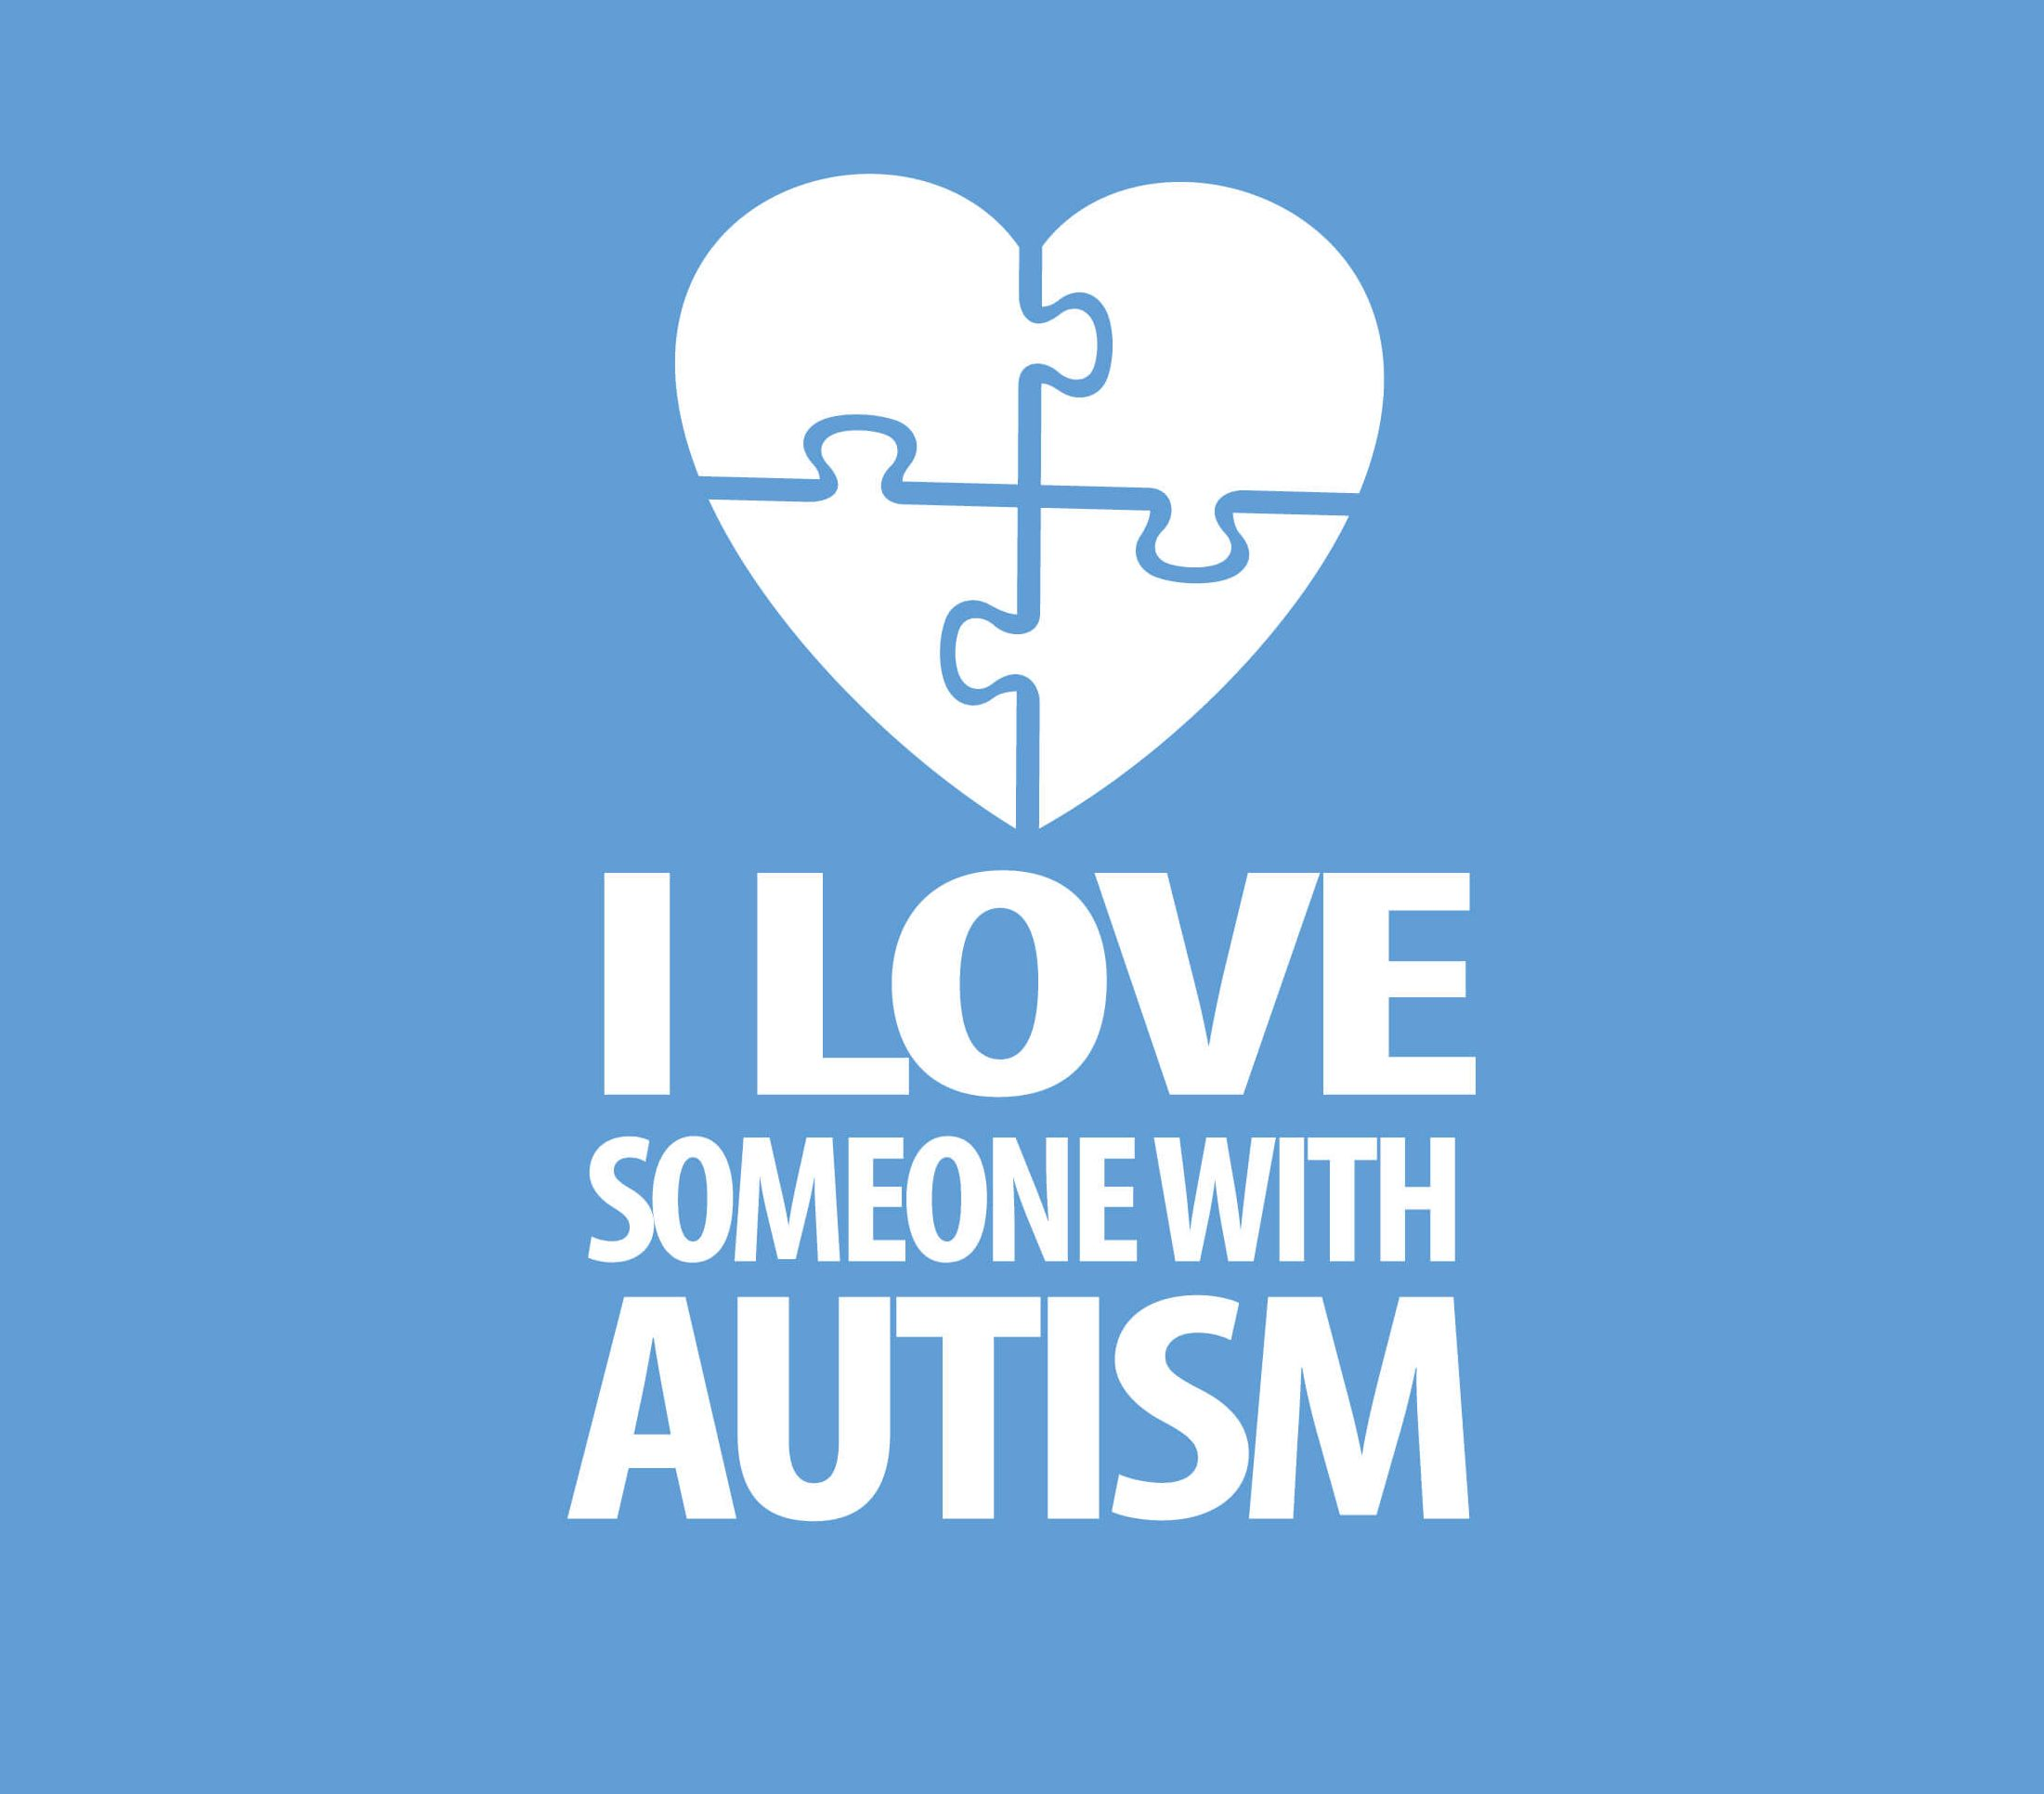 World Autism Day 2019 Quotes Images and Posters to share 2201x1932